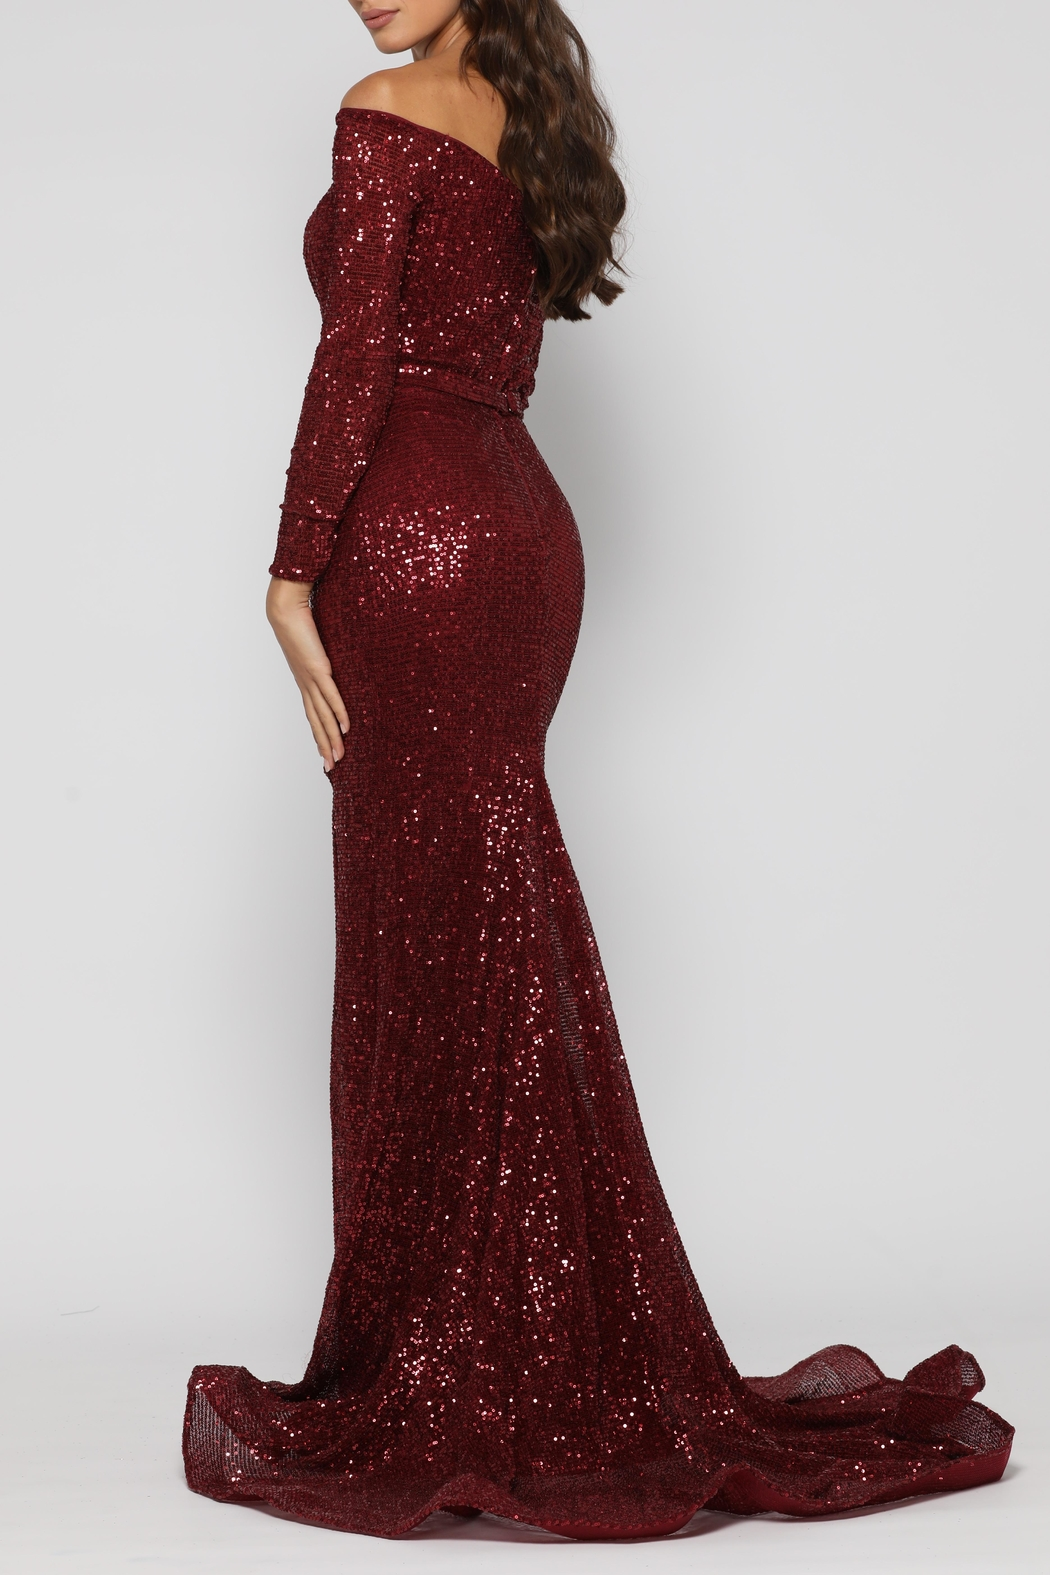 YSS the Label Veronica Gown Wine - Side Cropped Image